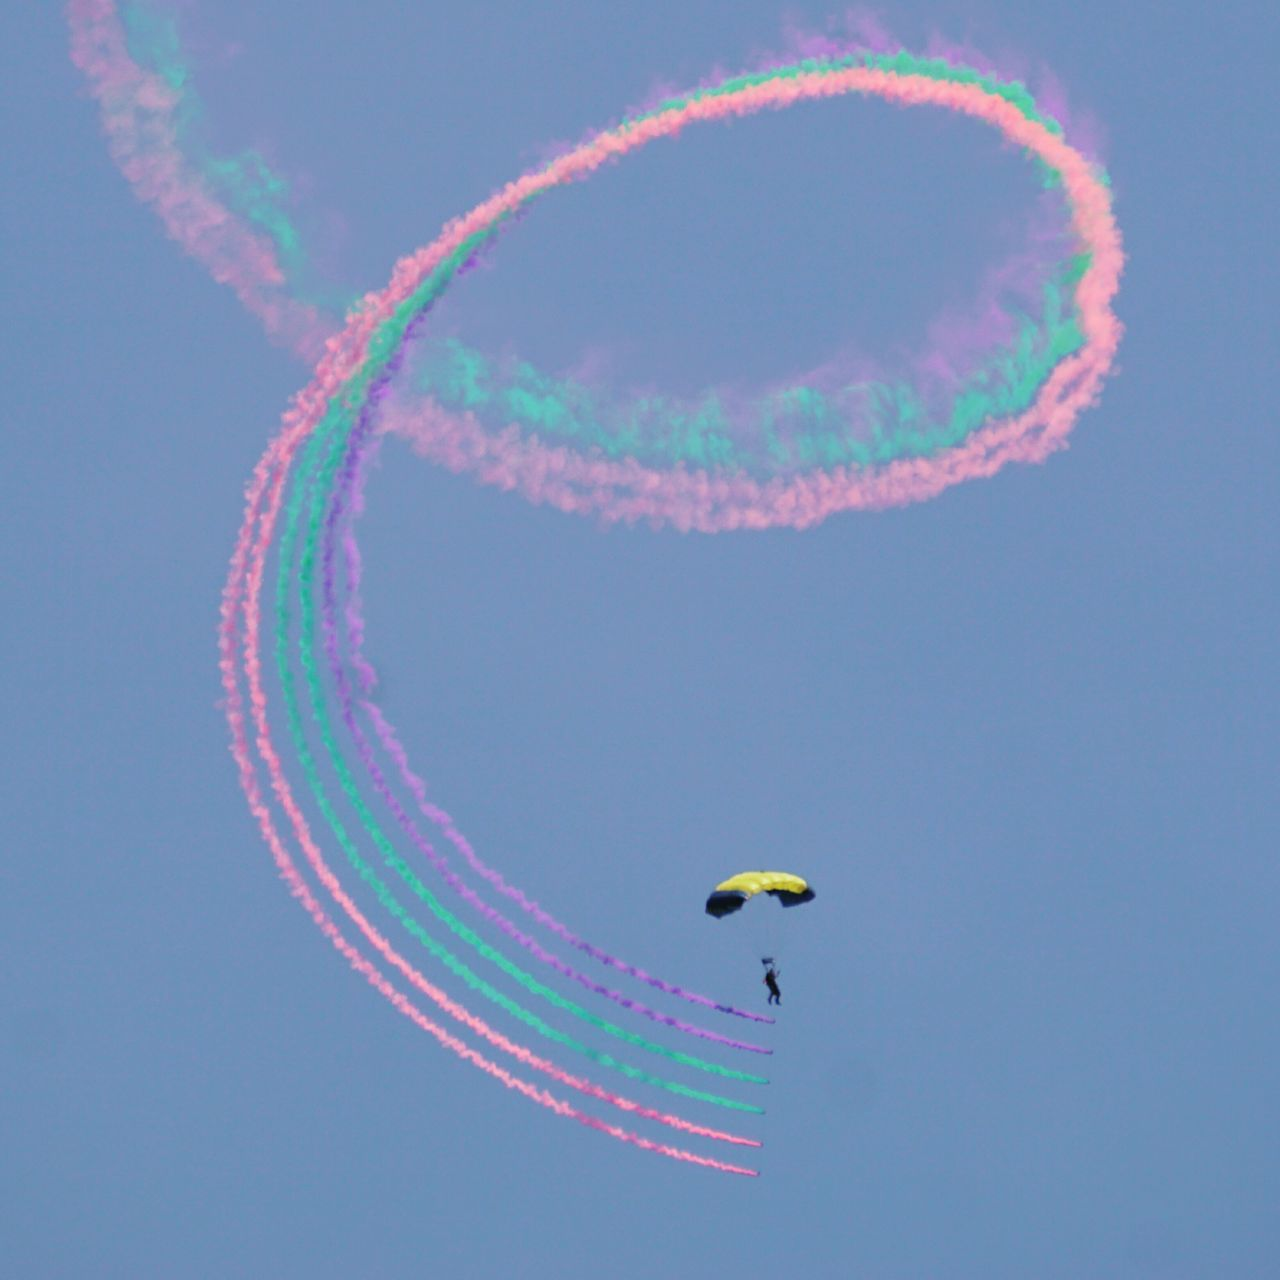 flying, low angle view, mid-air, parachute, vapor trail, airshow, multi colored, sky, transportation, extreme sports, adventure, air vehicle, outdoors, clear sky, leisure activity, aerobatics, blue, real people, day, skydiving, nature, stunt, paragliding, one person, beauty in nature, fighter plane